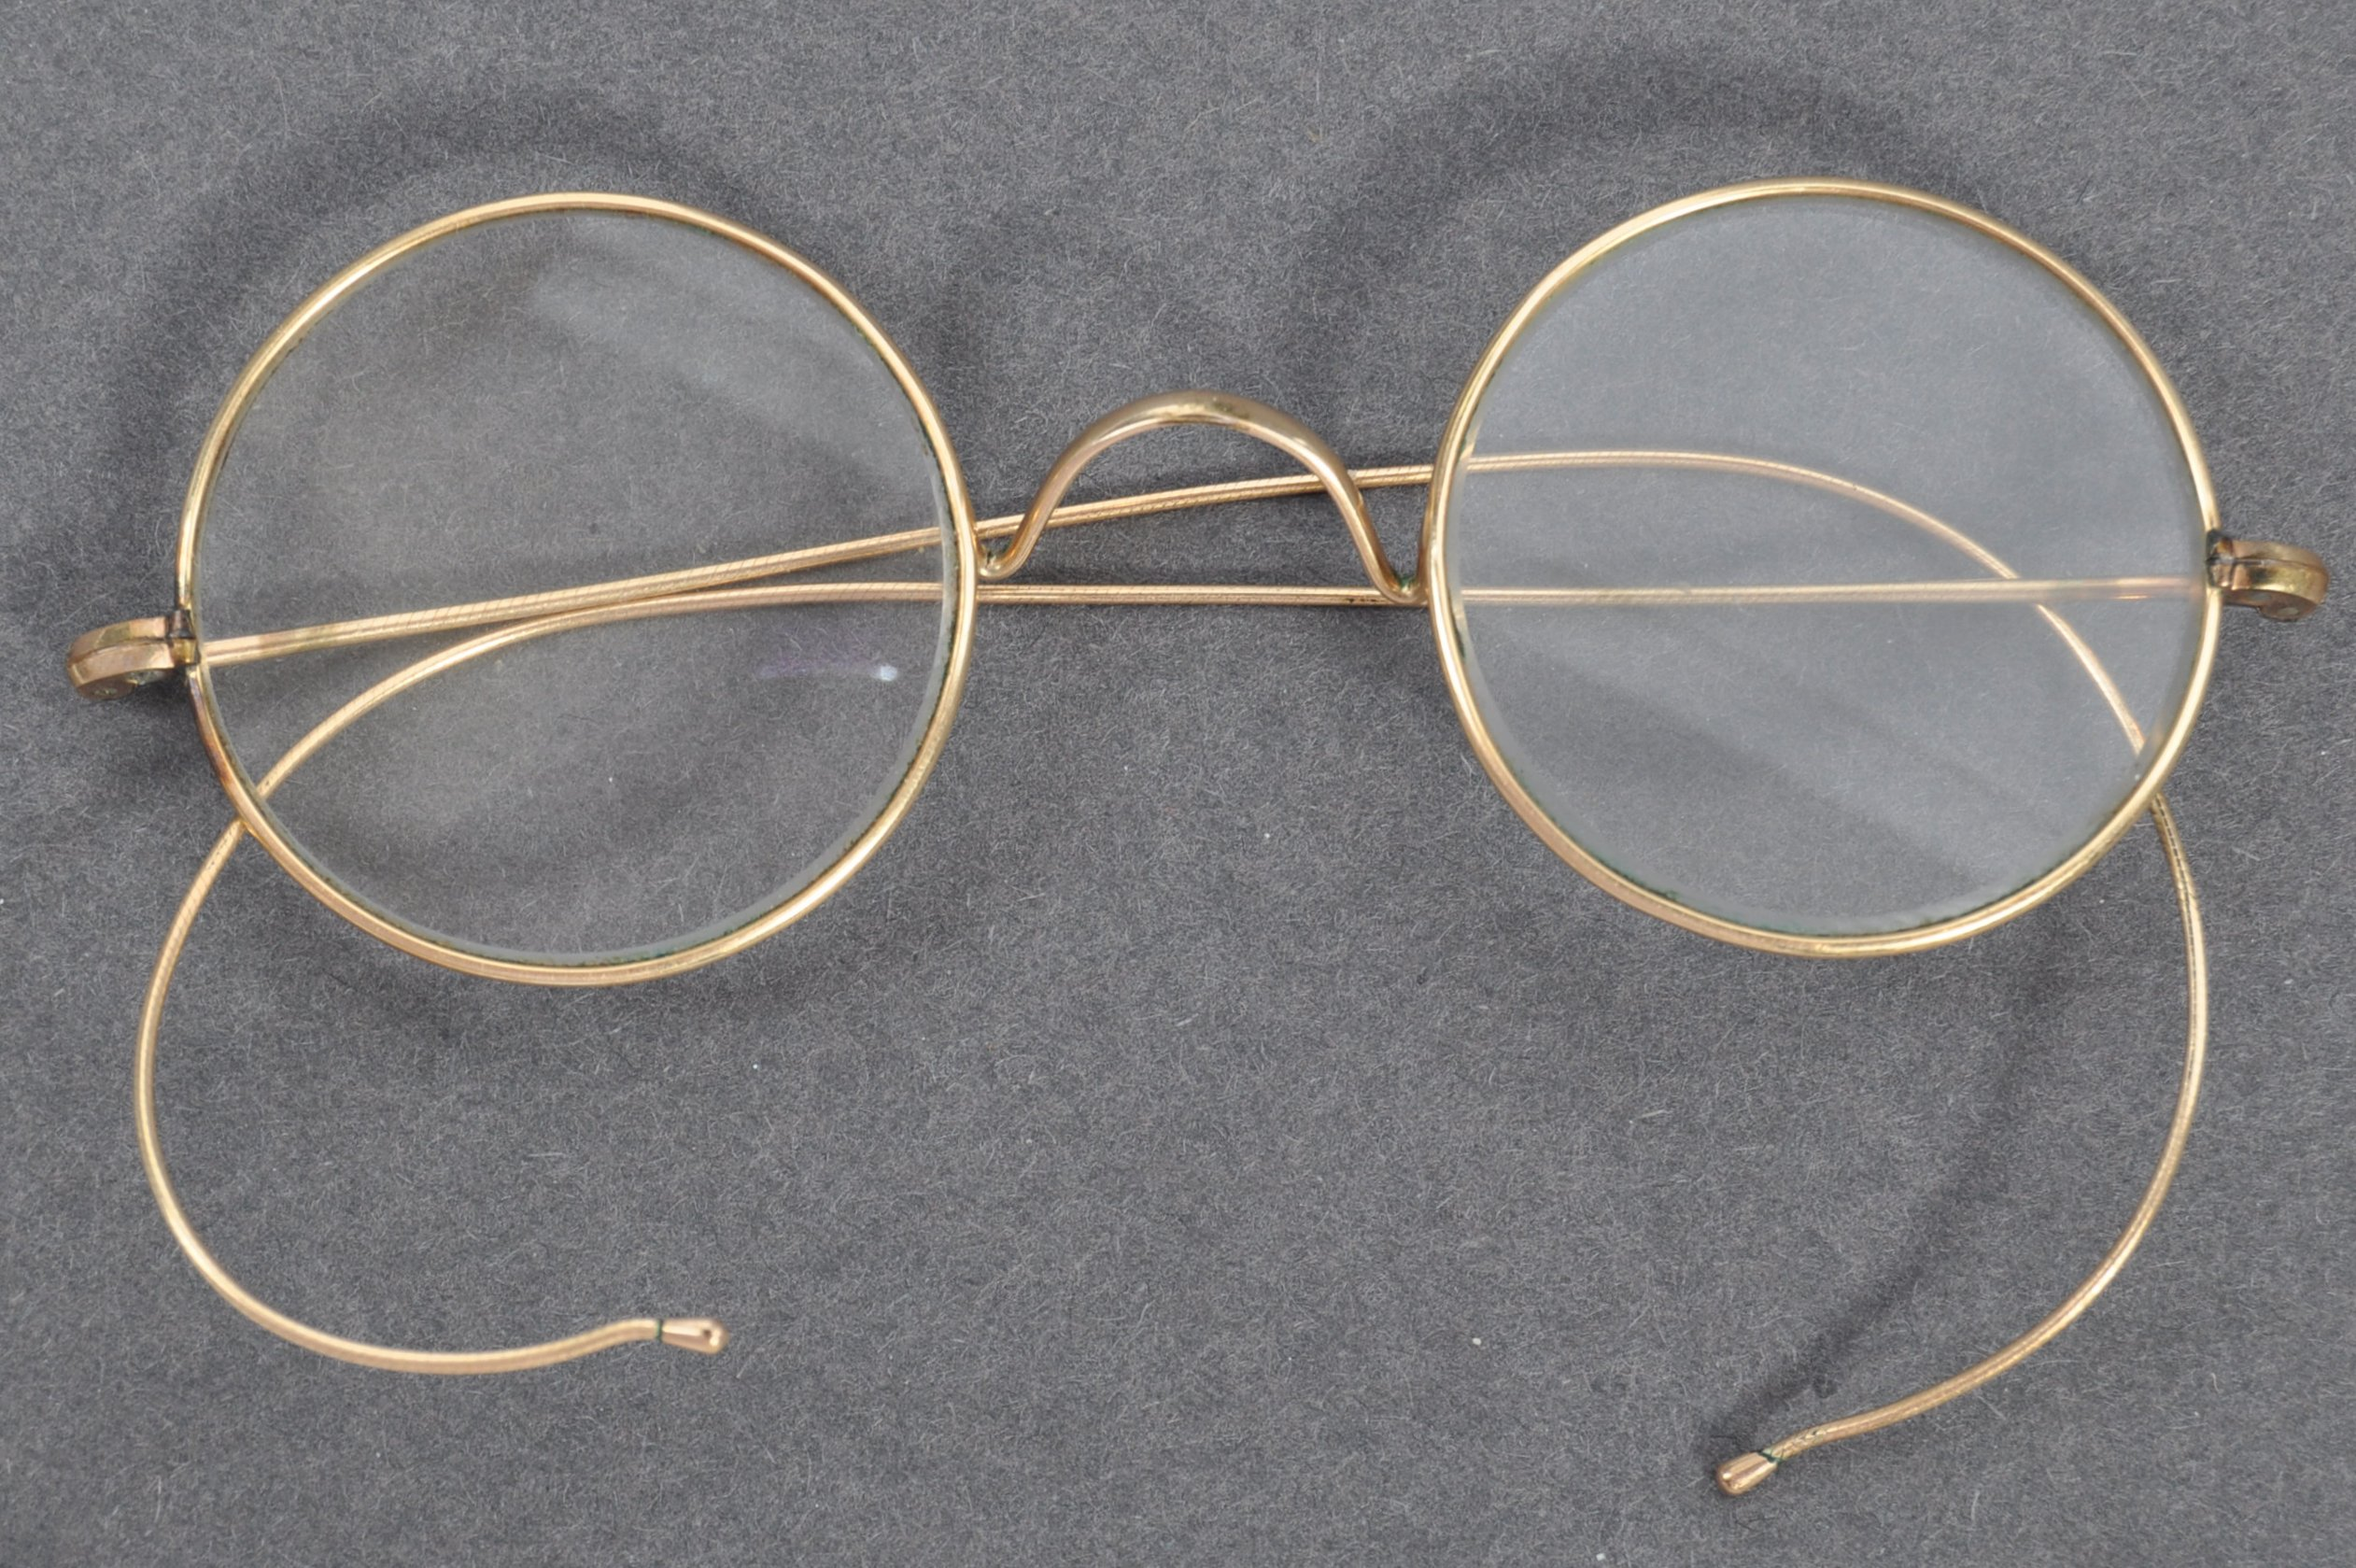 The glasses which once belonged to Gandhi